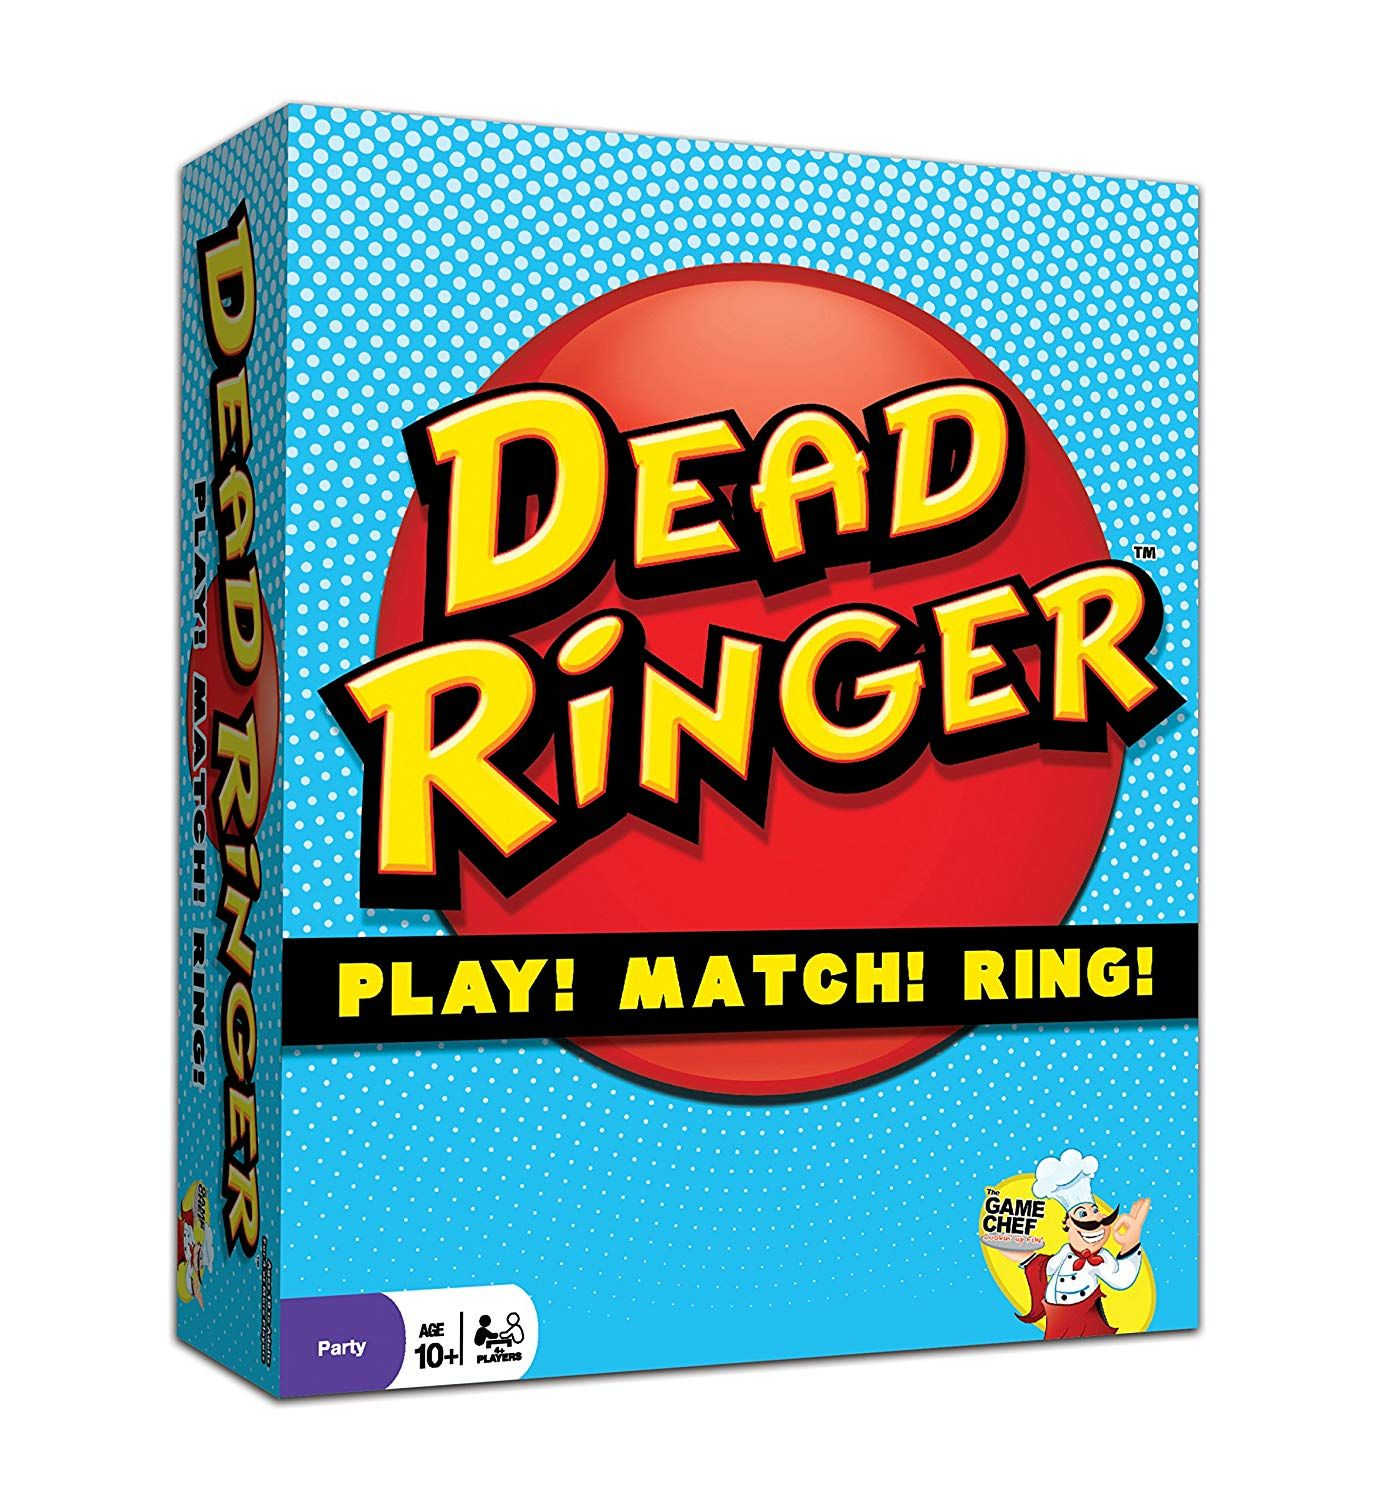 Dead Ringer Play! Match! Ring! (Fun Family / Party Board